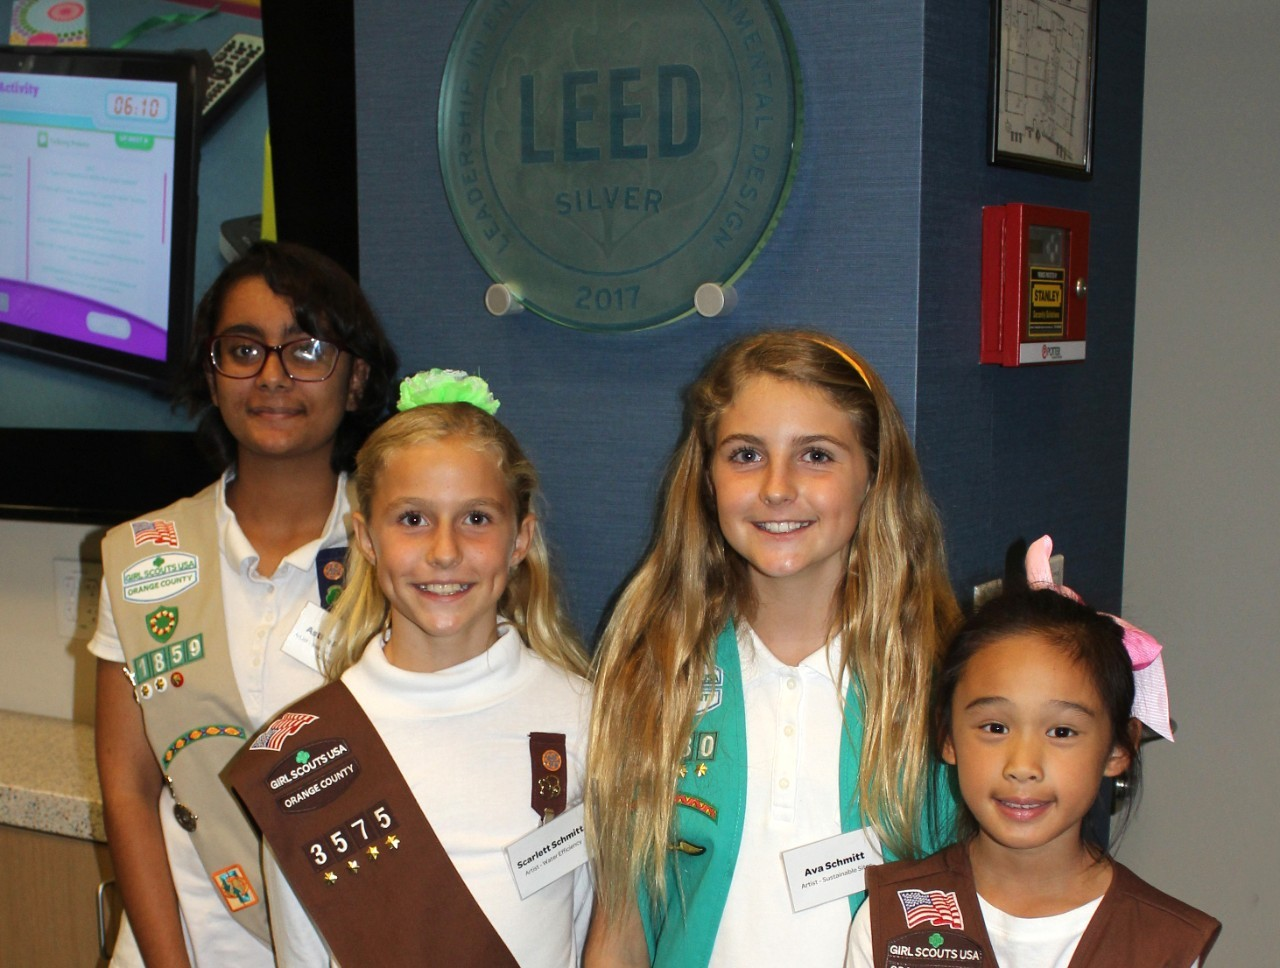 OC Girl Scout Artists Who Illustrated Educational Signs at the GSLC - Astha Parmar, Scarlett Schmitt, Ava Schmitt, Kayla Teng